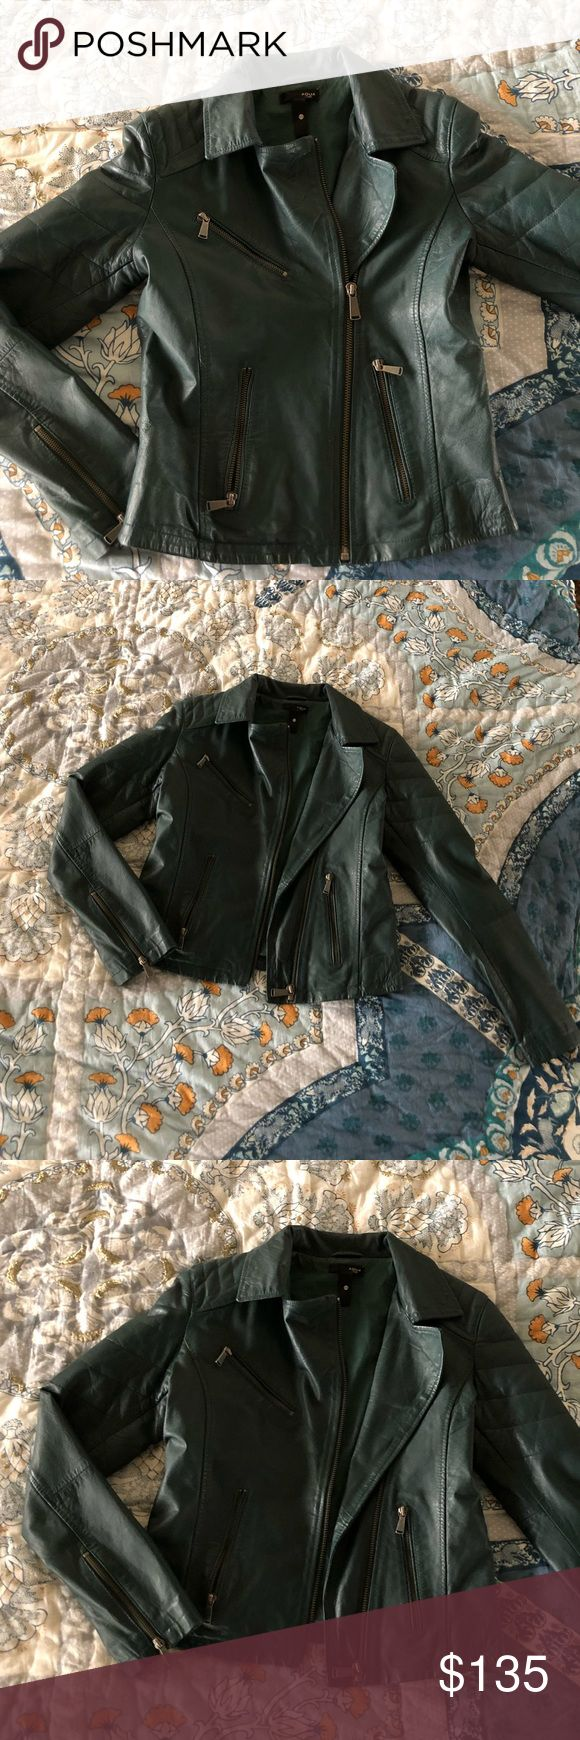 AQUA luxe teal green leather jacket XS Worn once just sitting in my closet beautiful teal / dark green leather jacket size XS. Real leather. Brand is AQUA luxe. Bought from Bloomingdales. Aqua Jackets & Coats